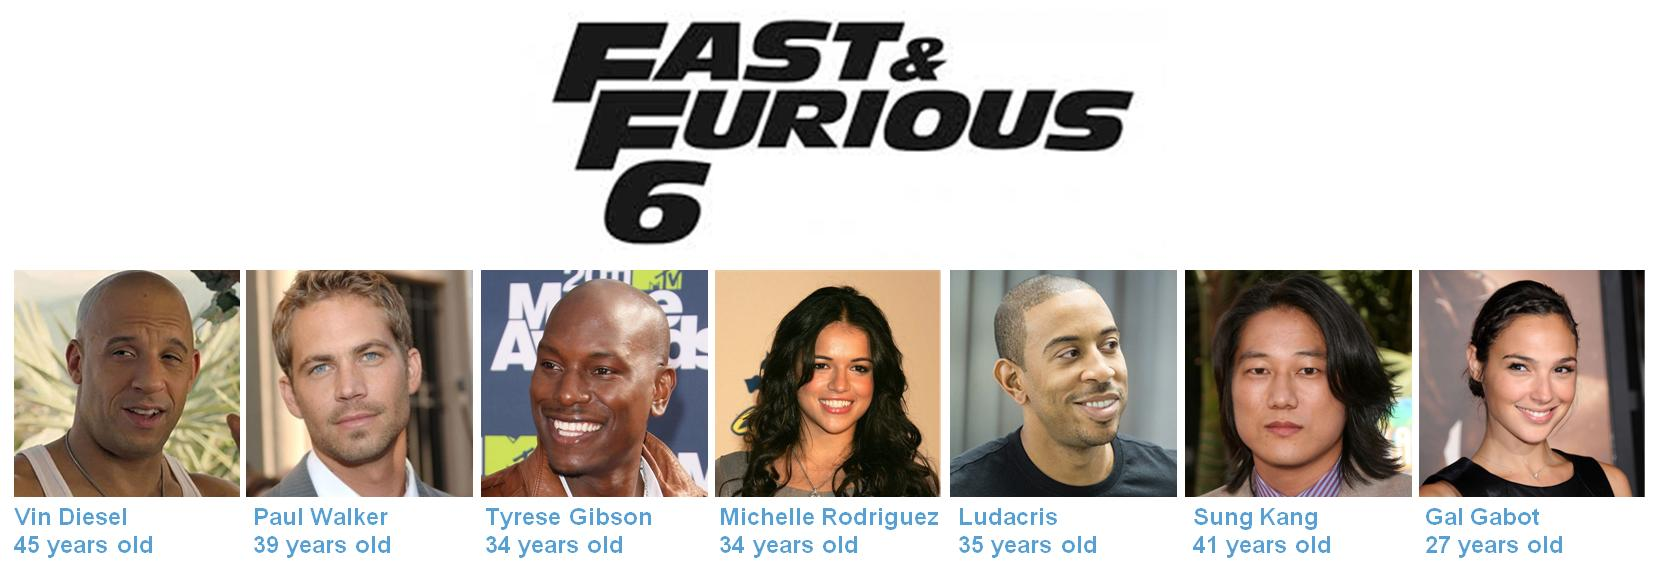 fastfruiousactors